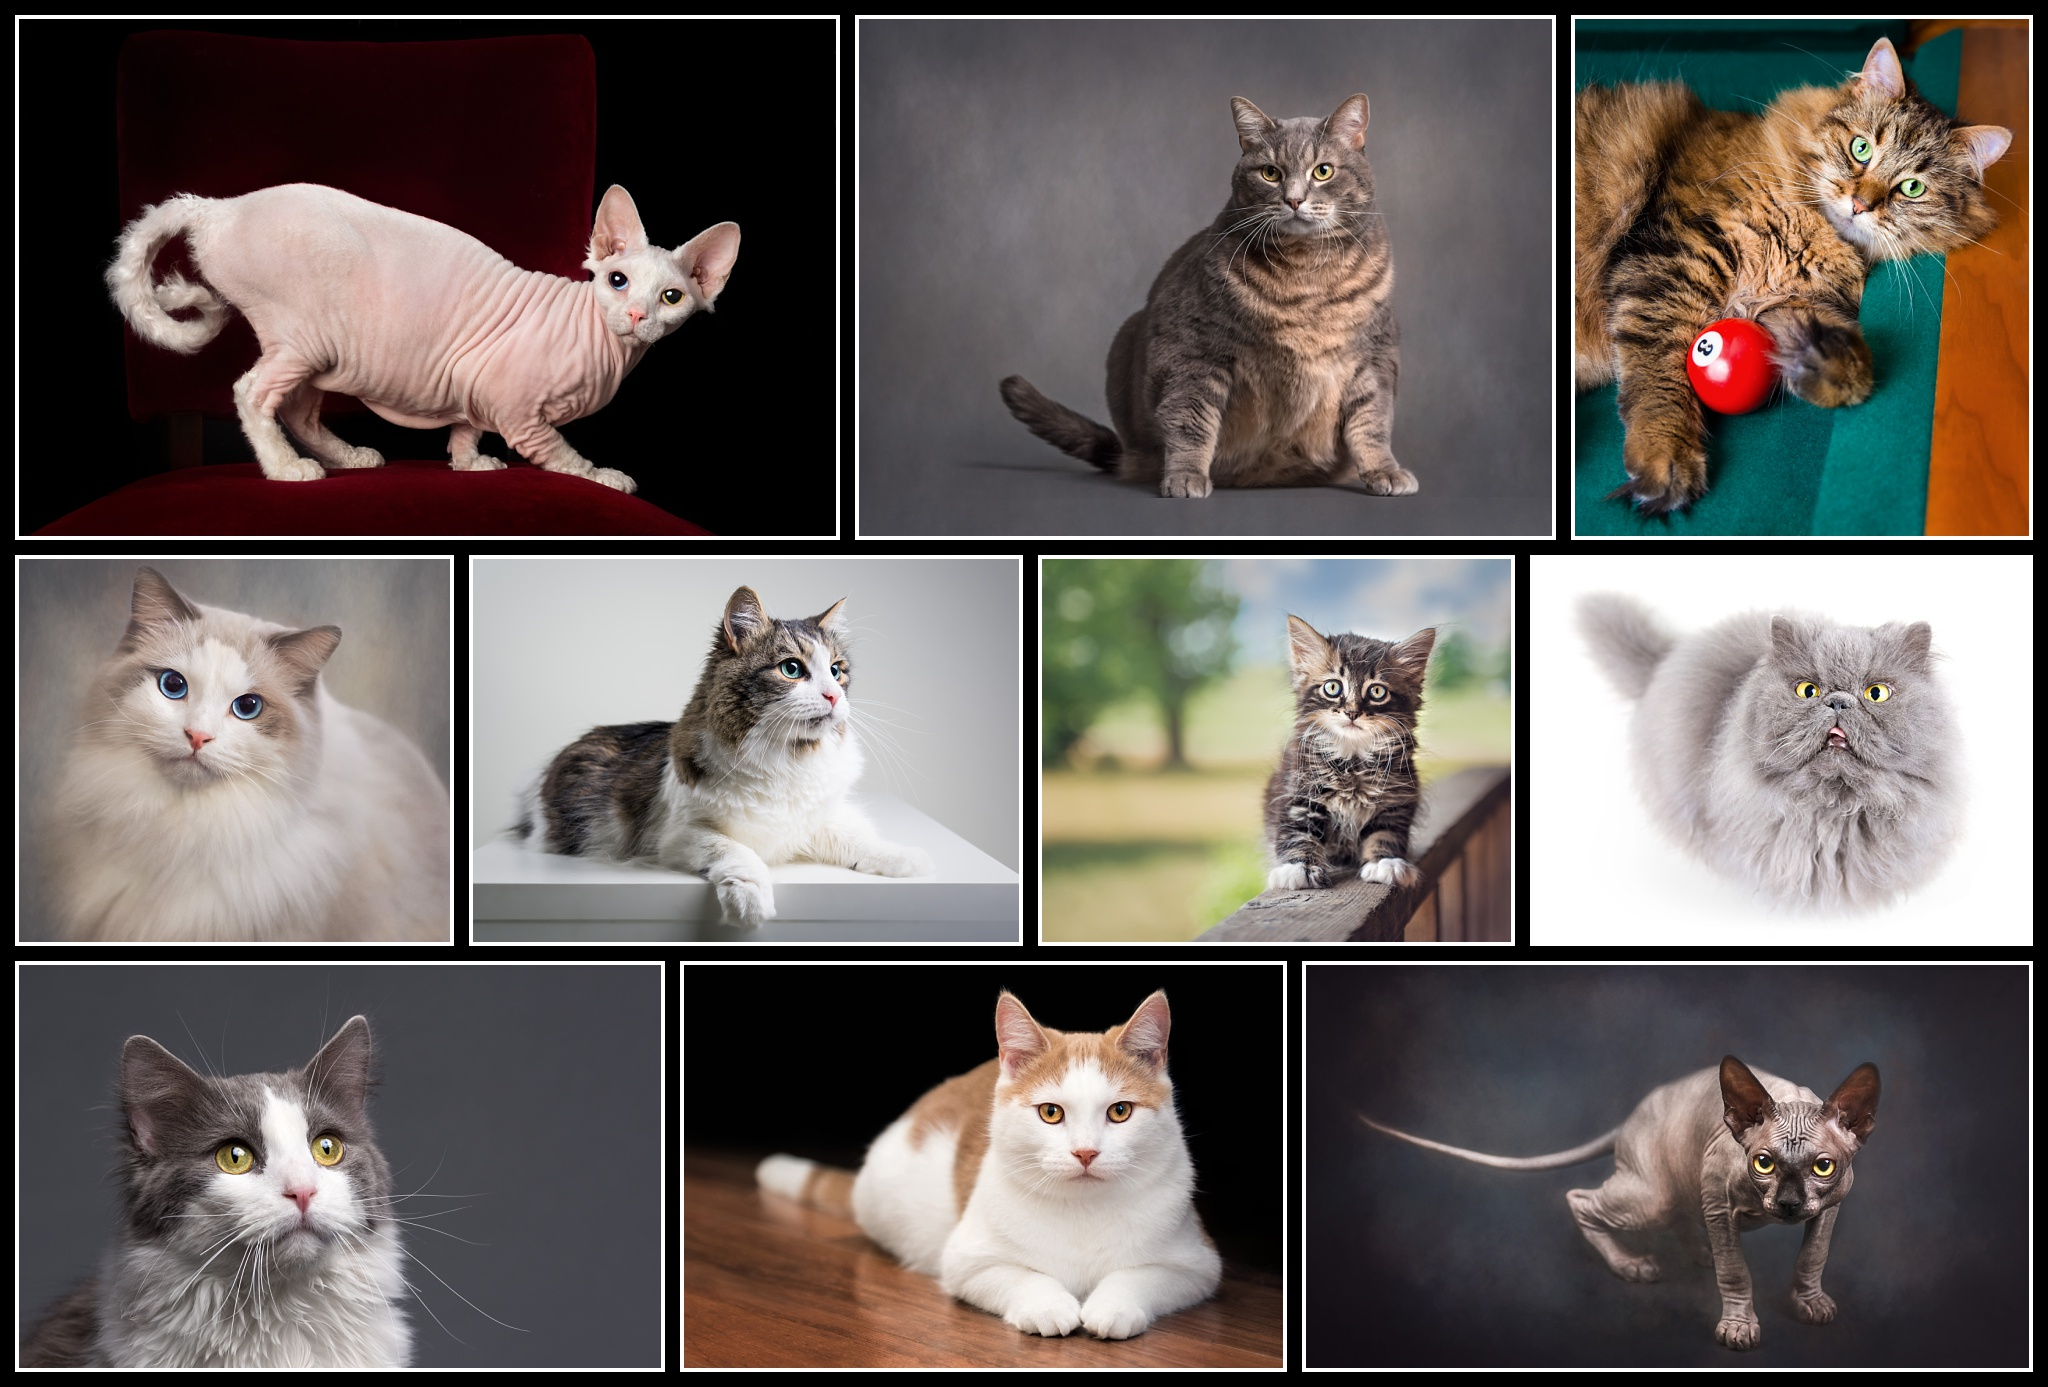 Feline Portraiture 2019 - The 10 accepted images in my Feline Portraiture Accreditation.